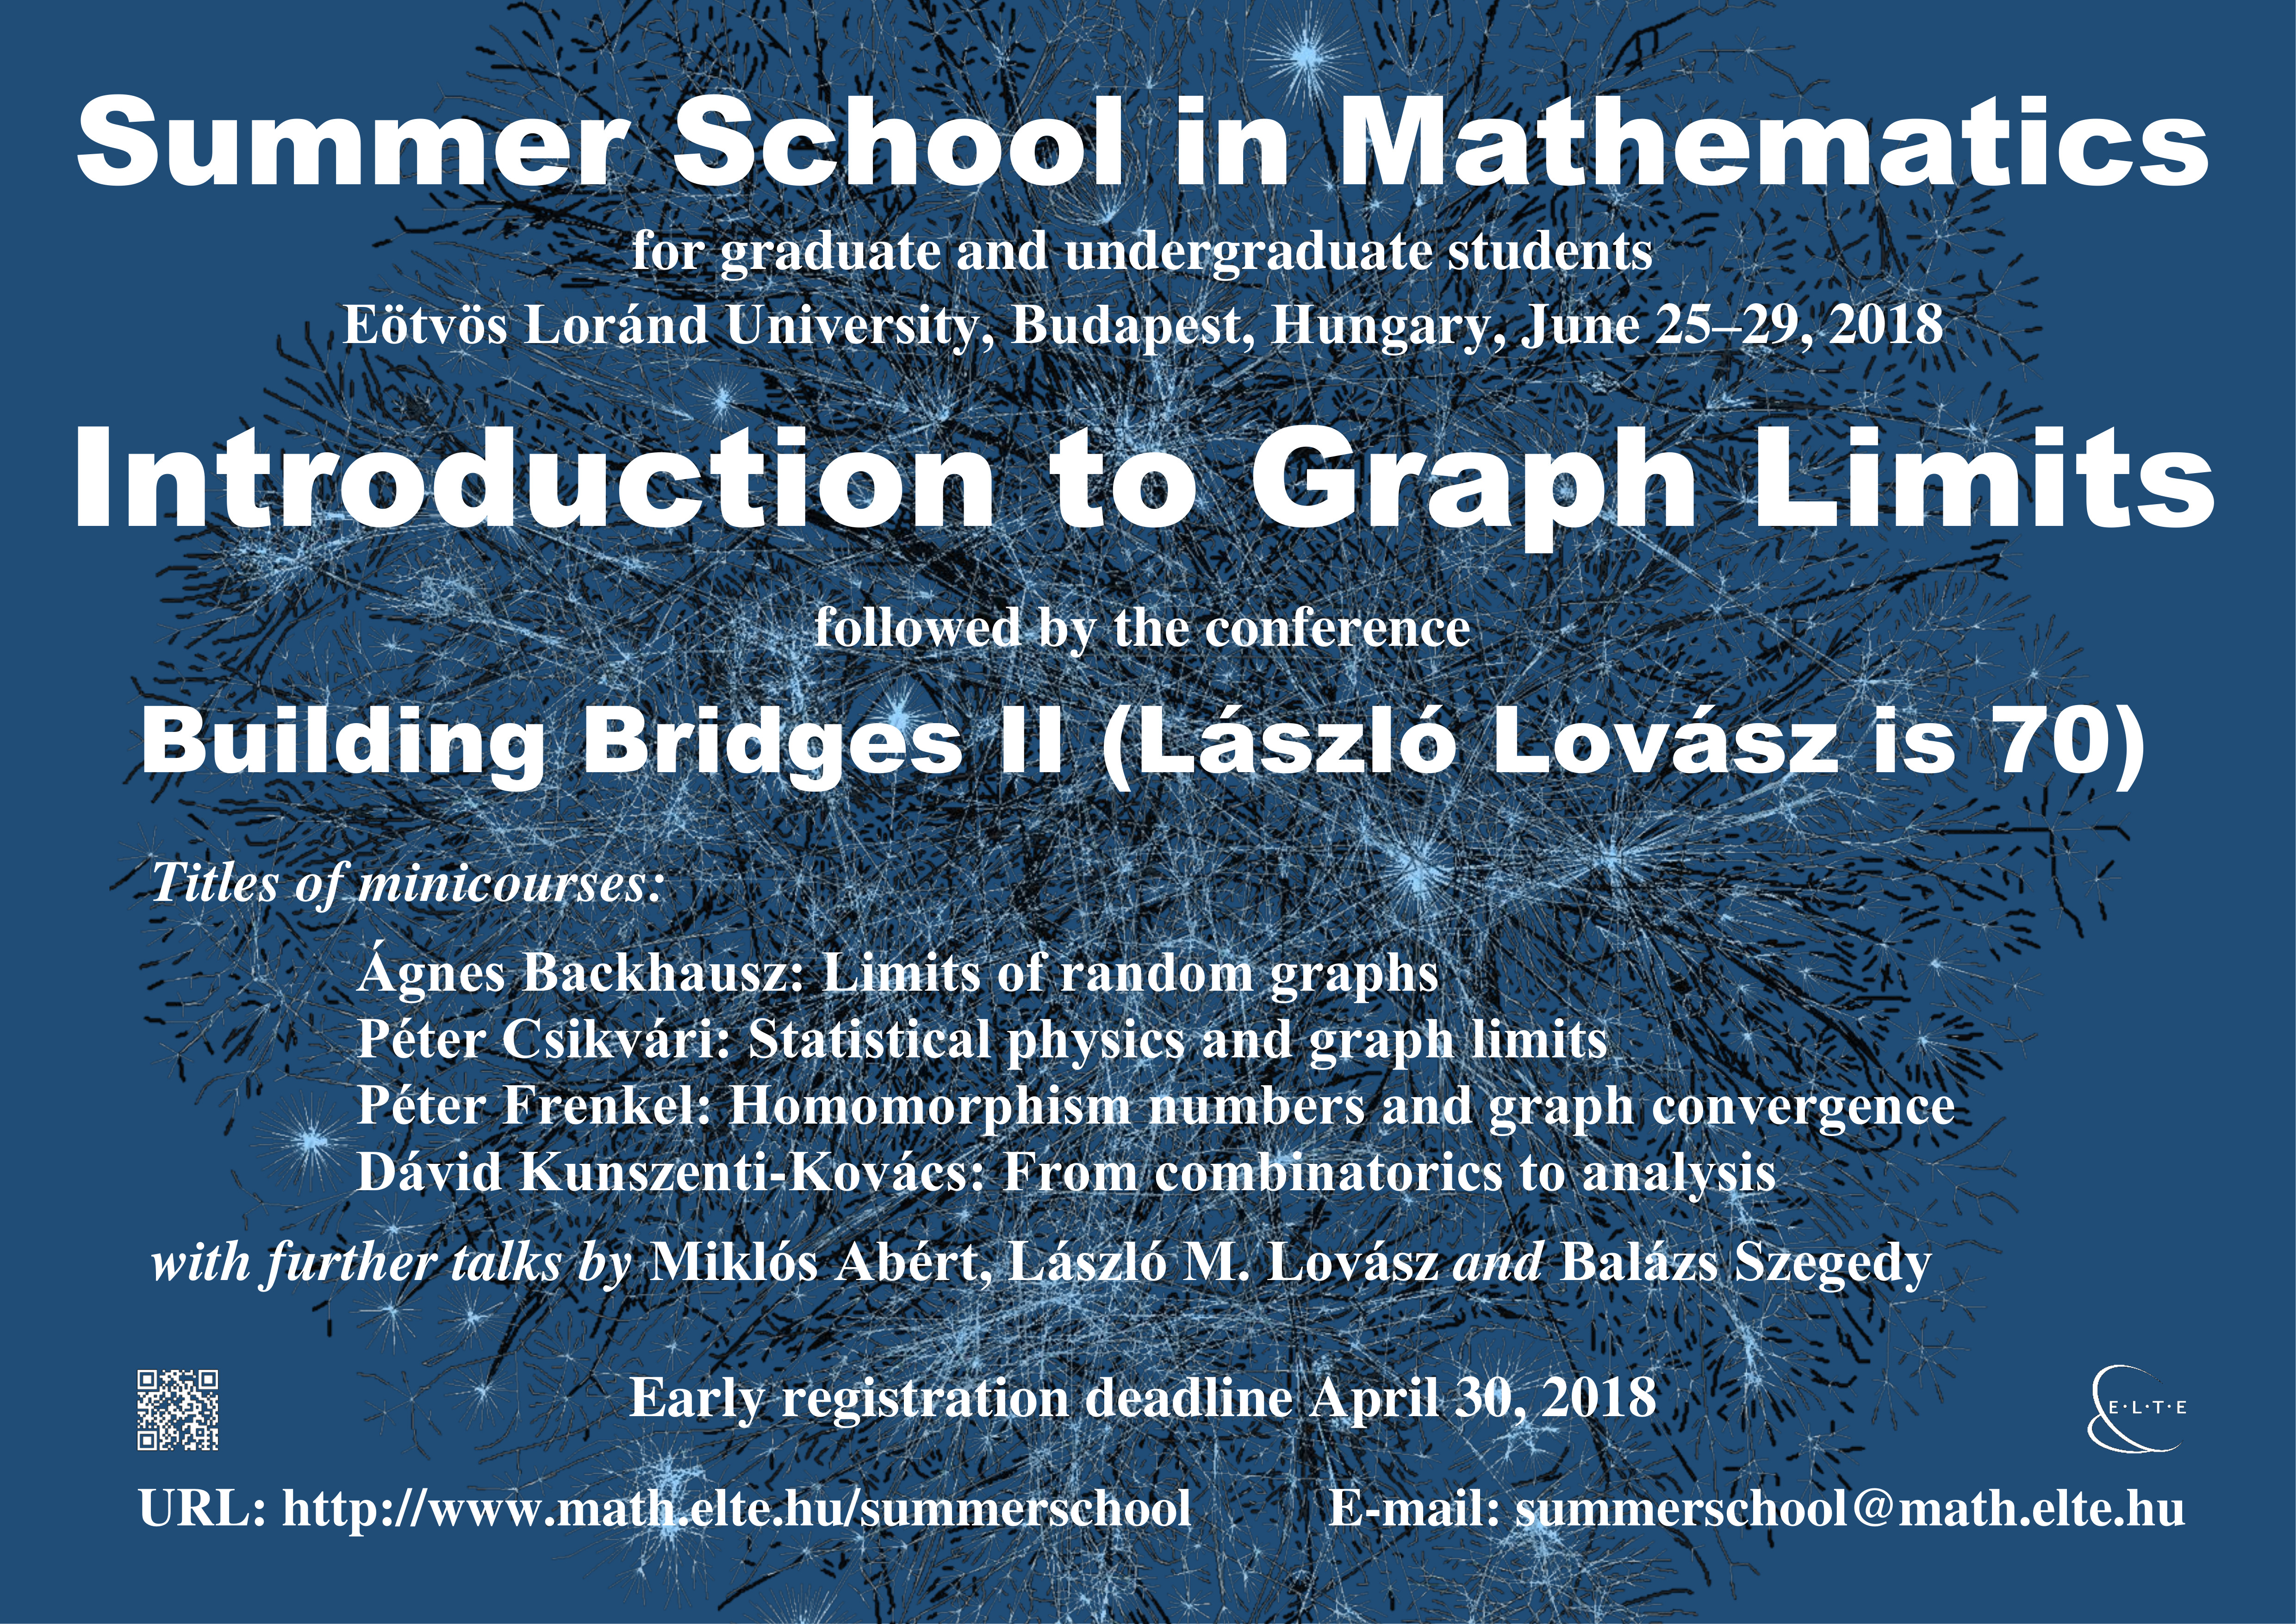 Summer School in Mathematics - Budapest, 2018